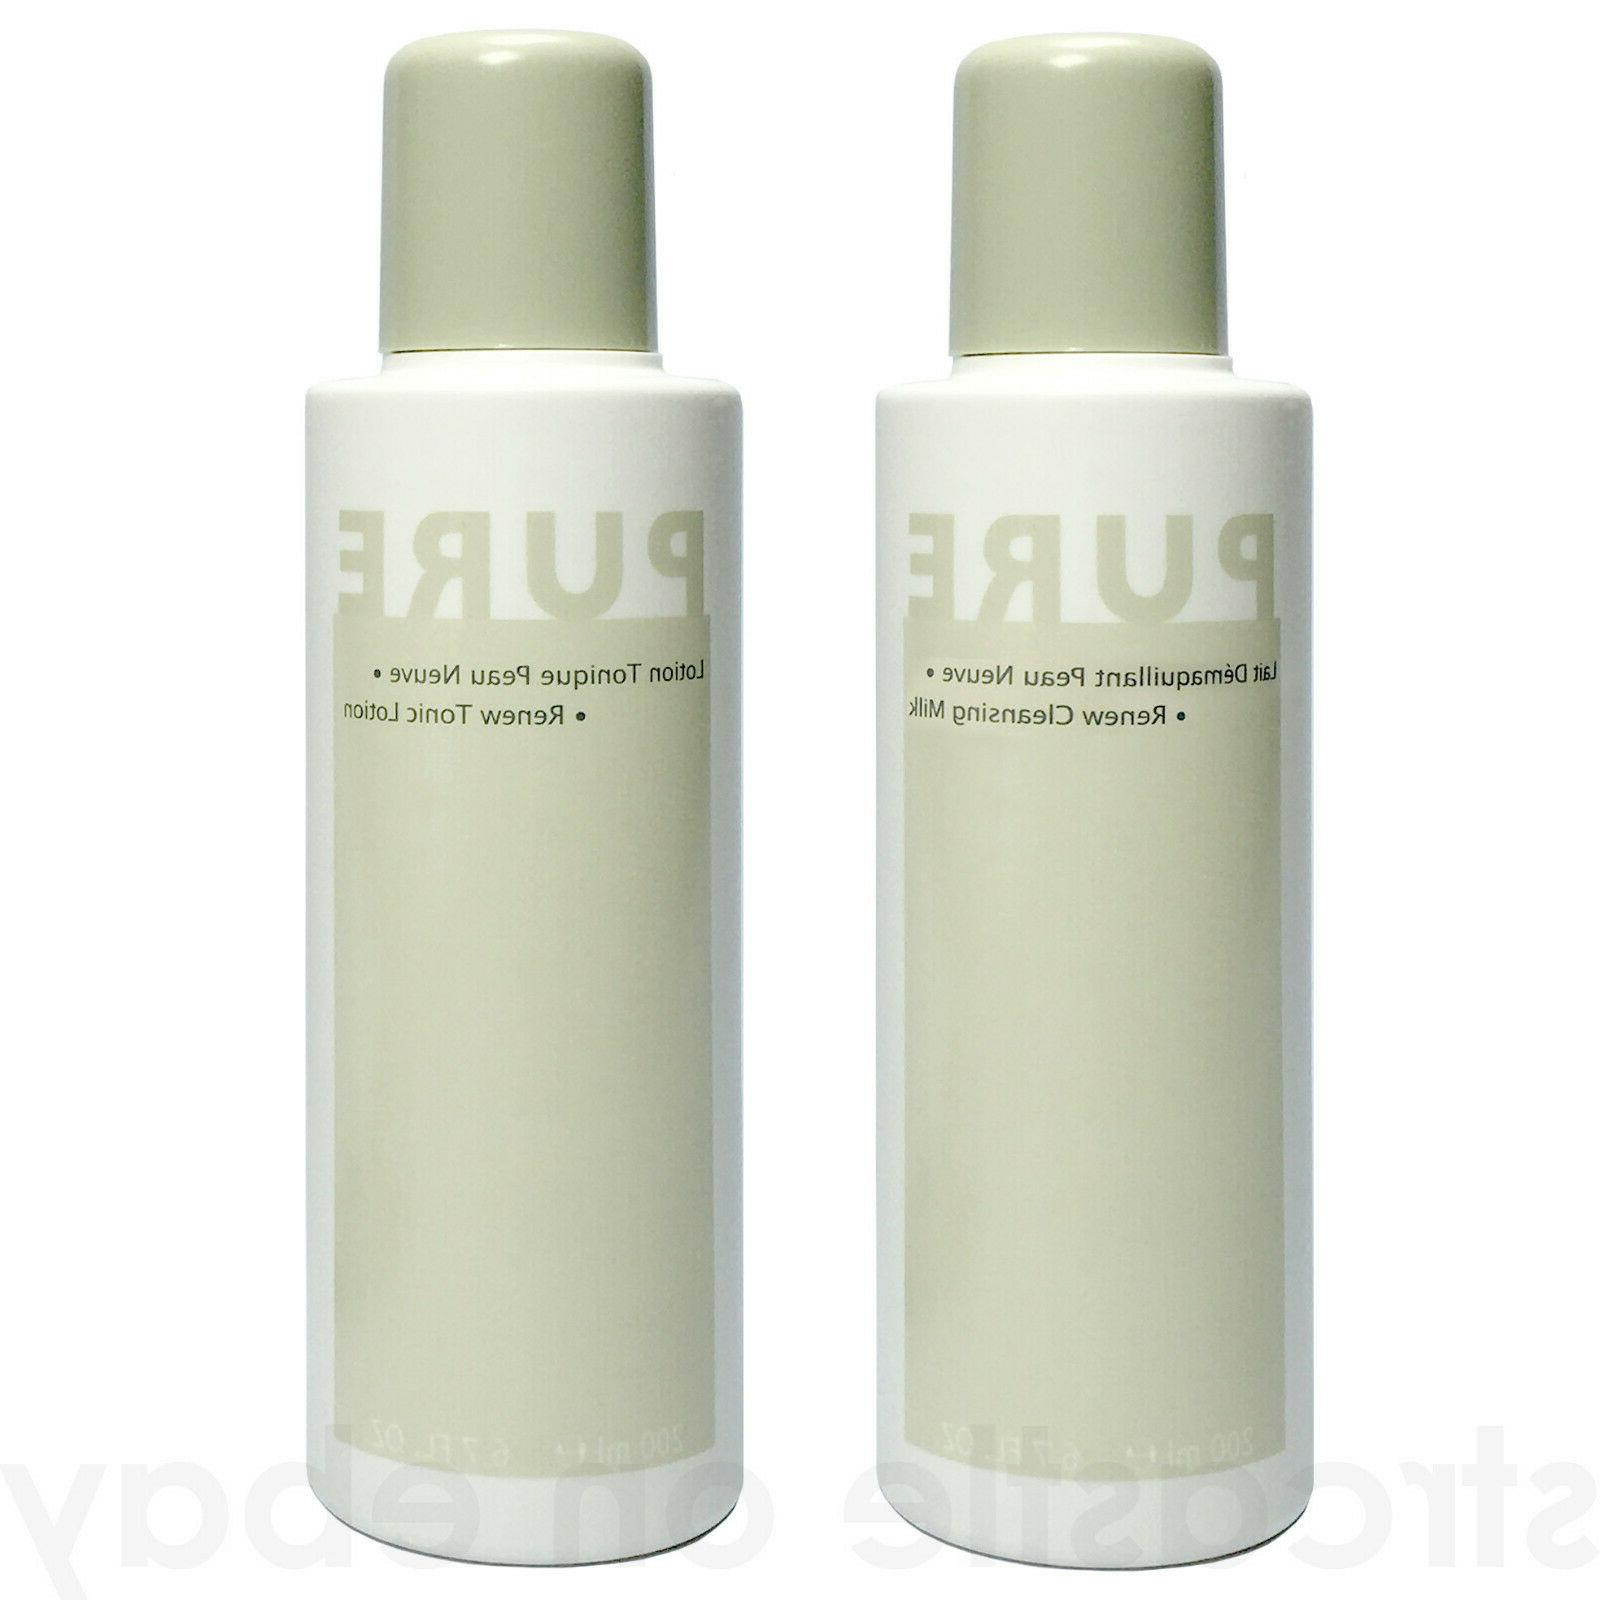 renew cleansing milk facial cleanser and renew